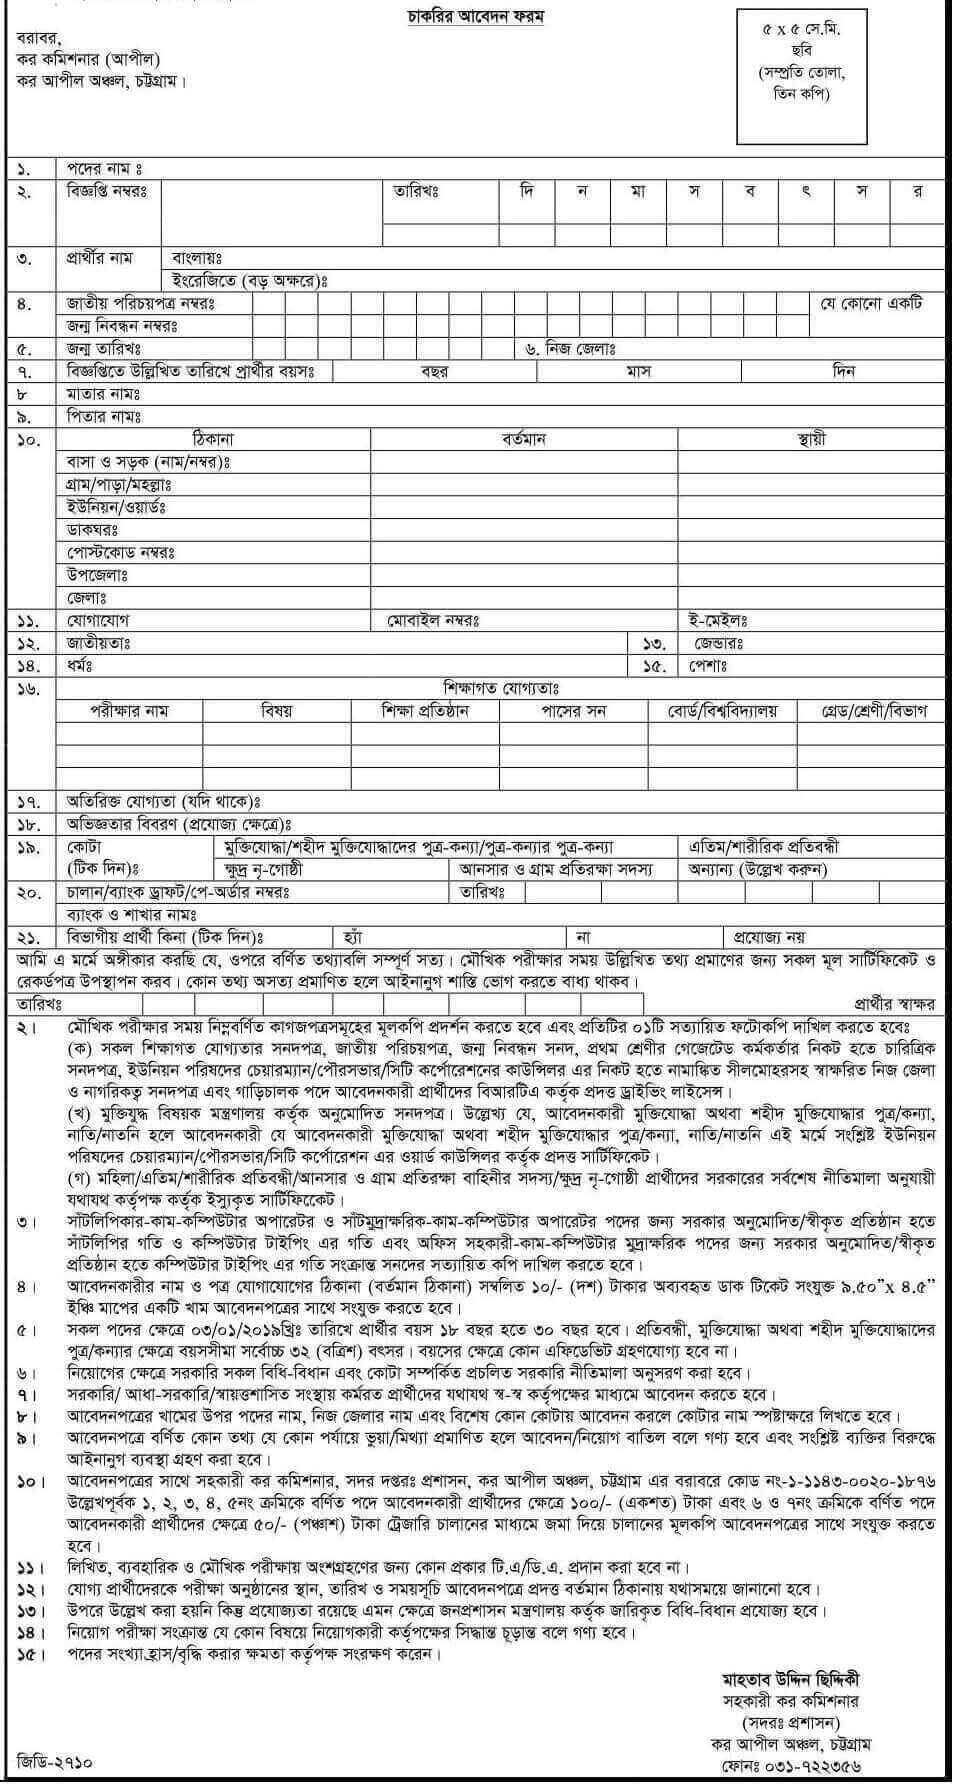 Tax Commissioner Office Job Circular 2018